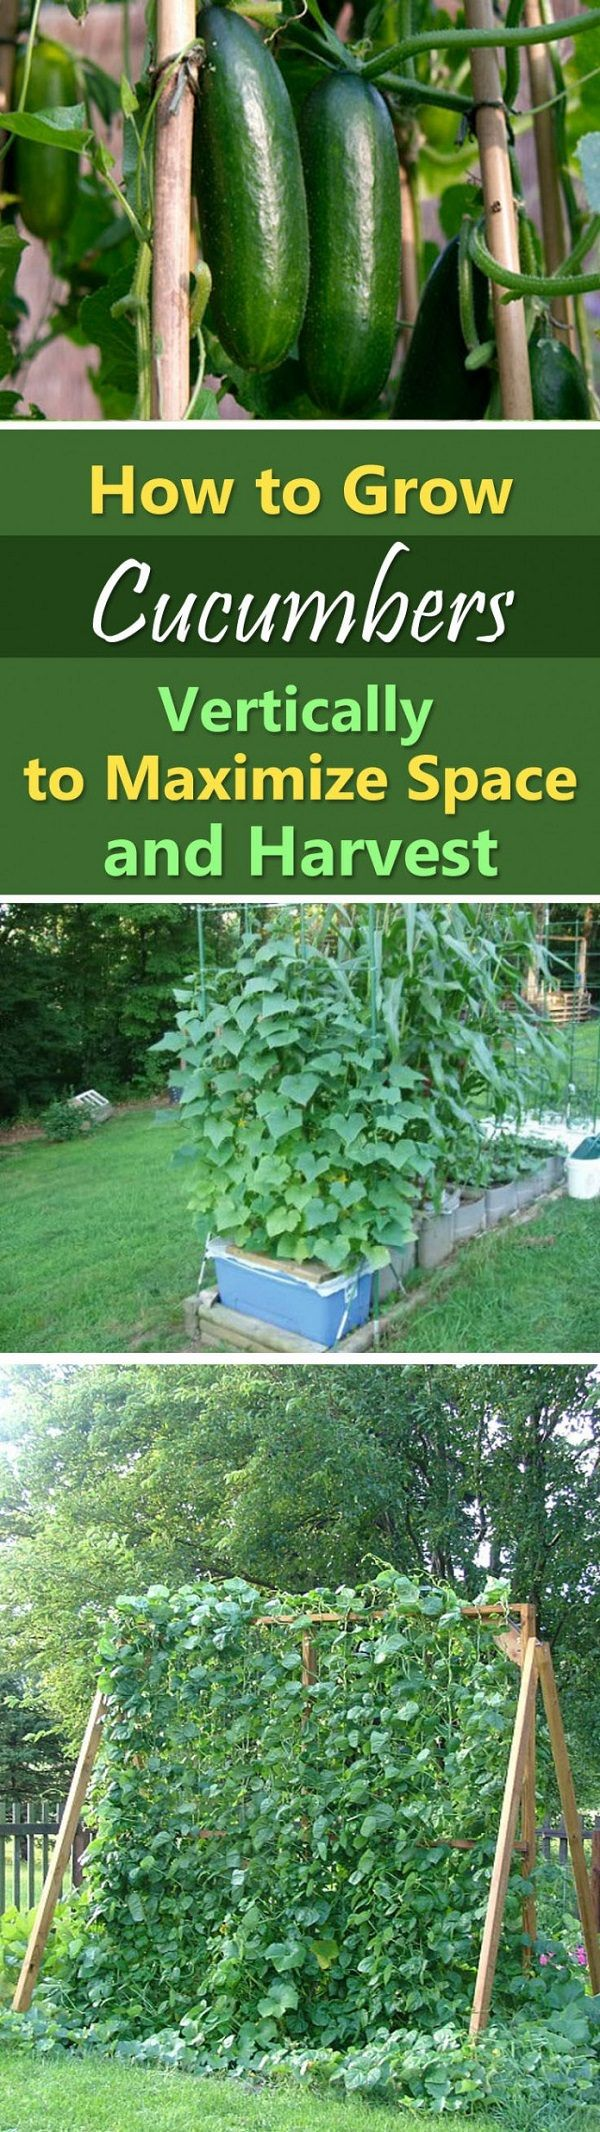 Here how you can grow cucumbers vertically to maximize harvest!